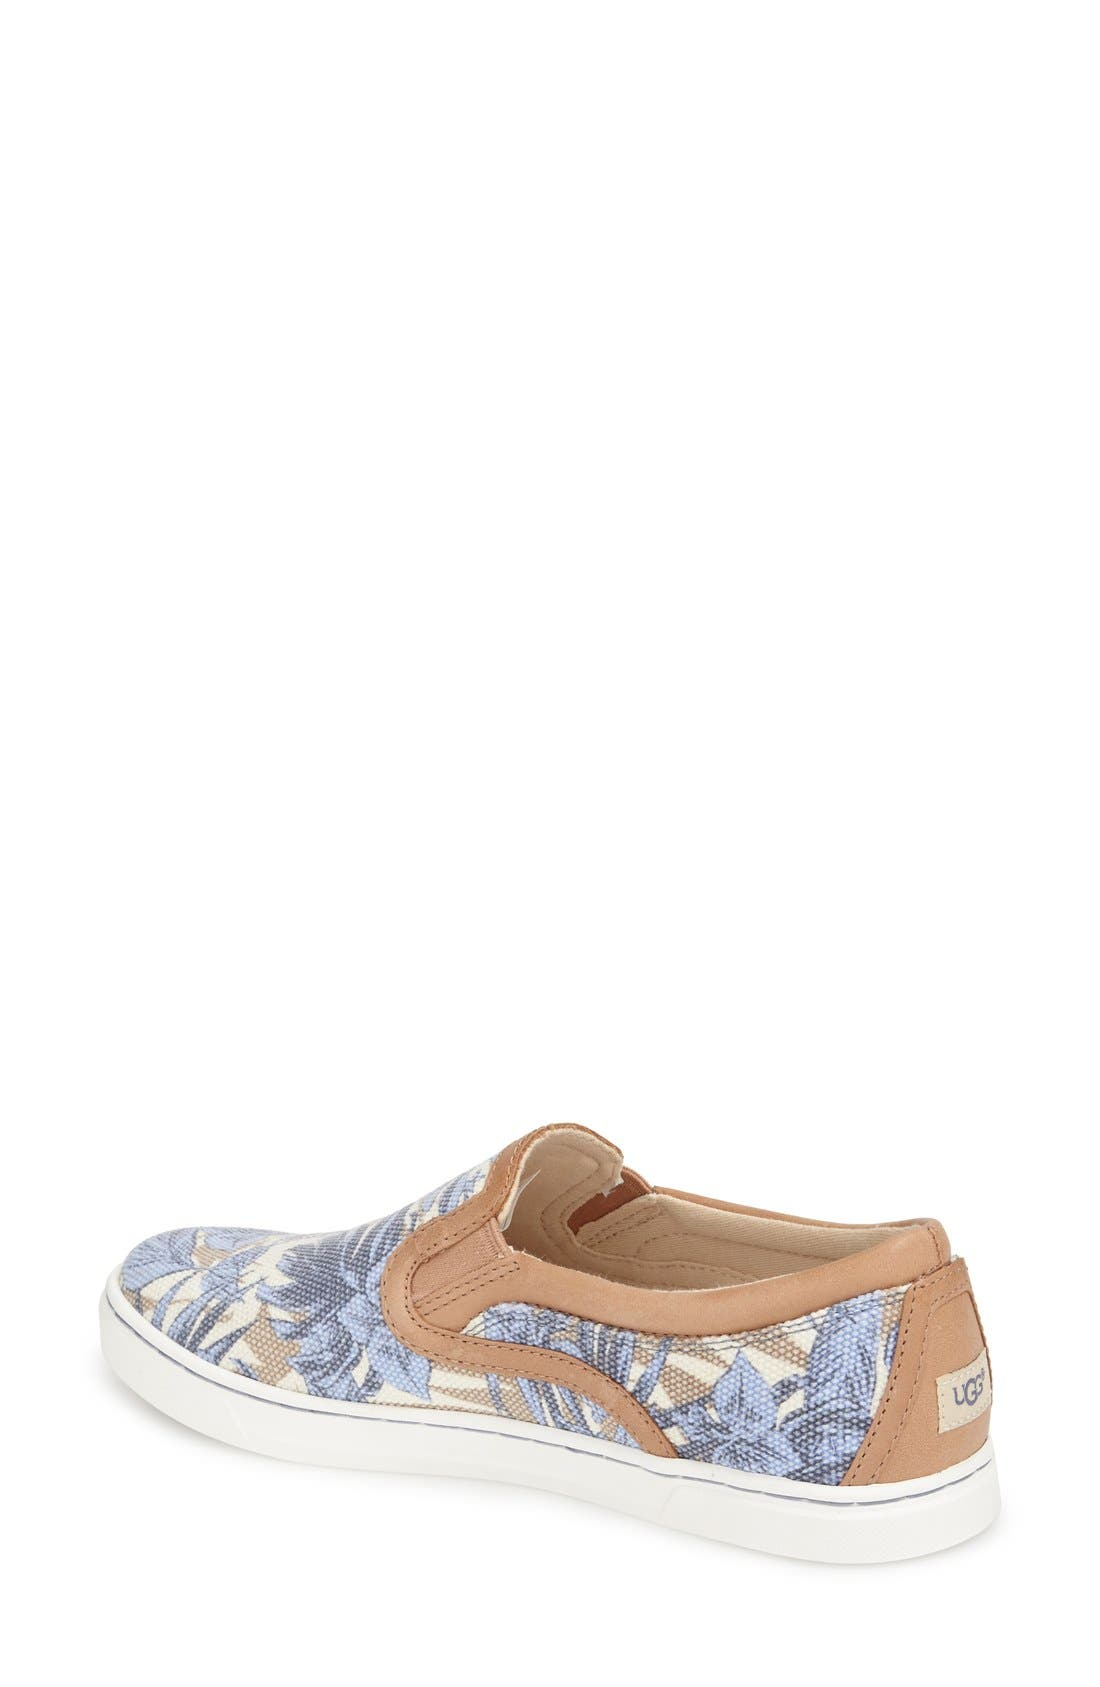 Alternate Image 2  - UGG® 'Fierce - Island Floral' Slip-On Sneaker (Women)